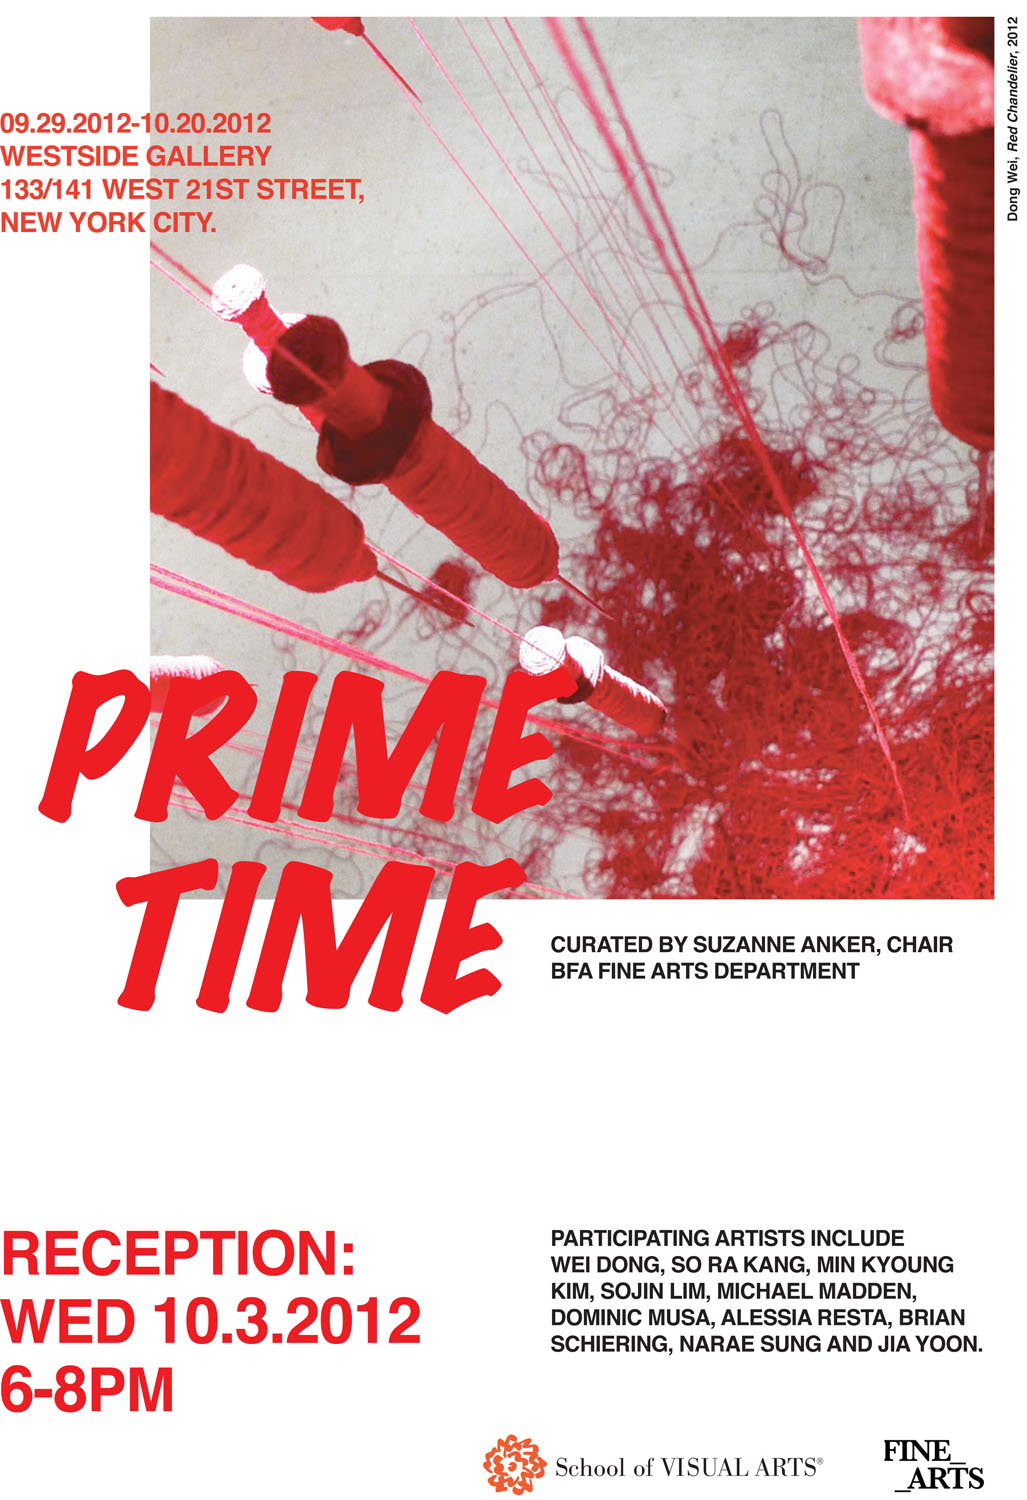 An advertisement for an exhibition at the SVA Westside Gallery titled, Prime Time. The exhibition is on view from September 29 through October 20, 2012. The post features an artwork by Dong Wei.